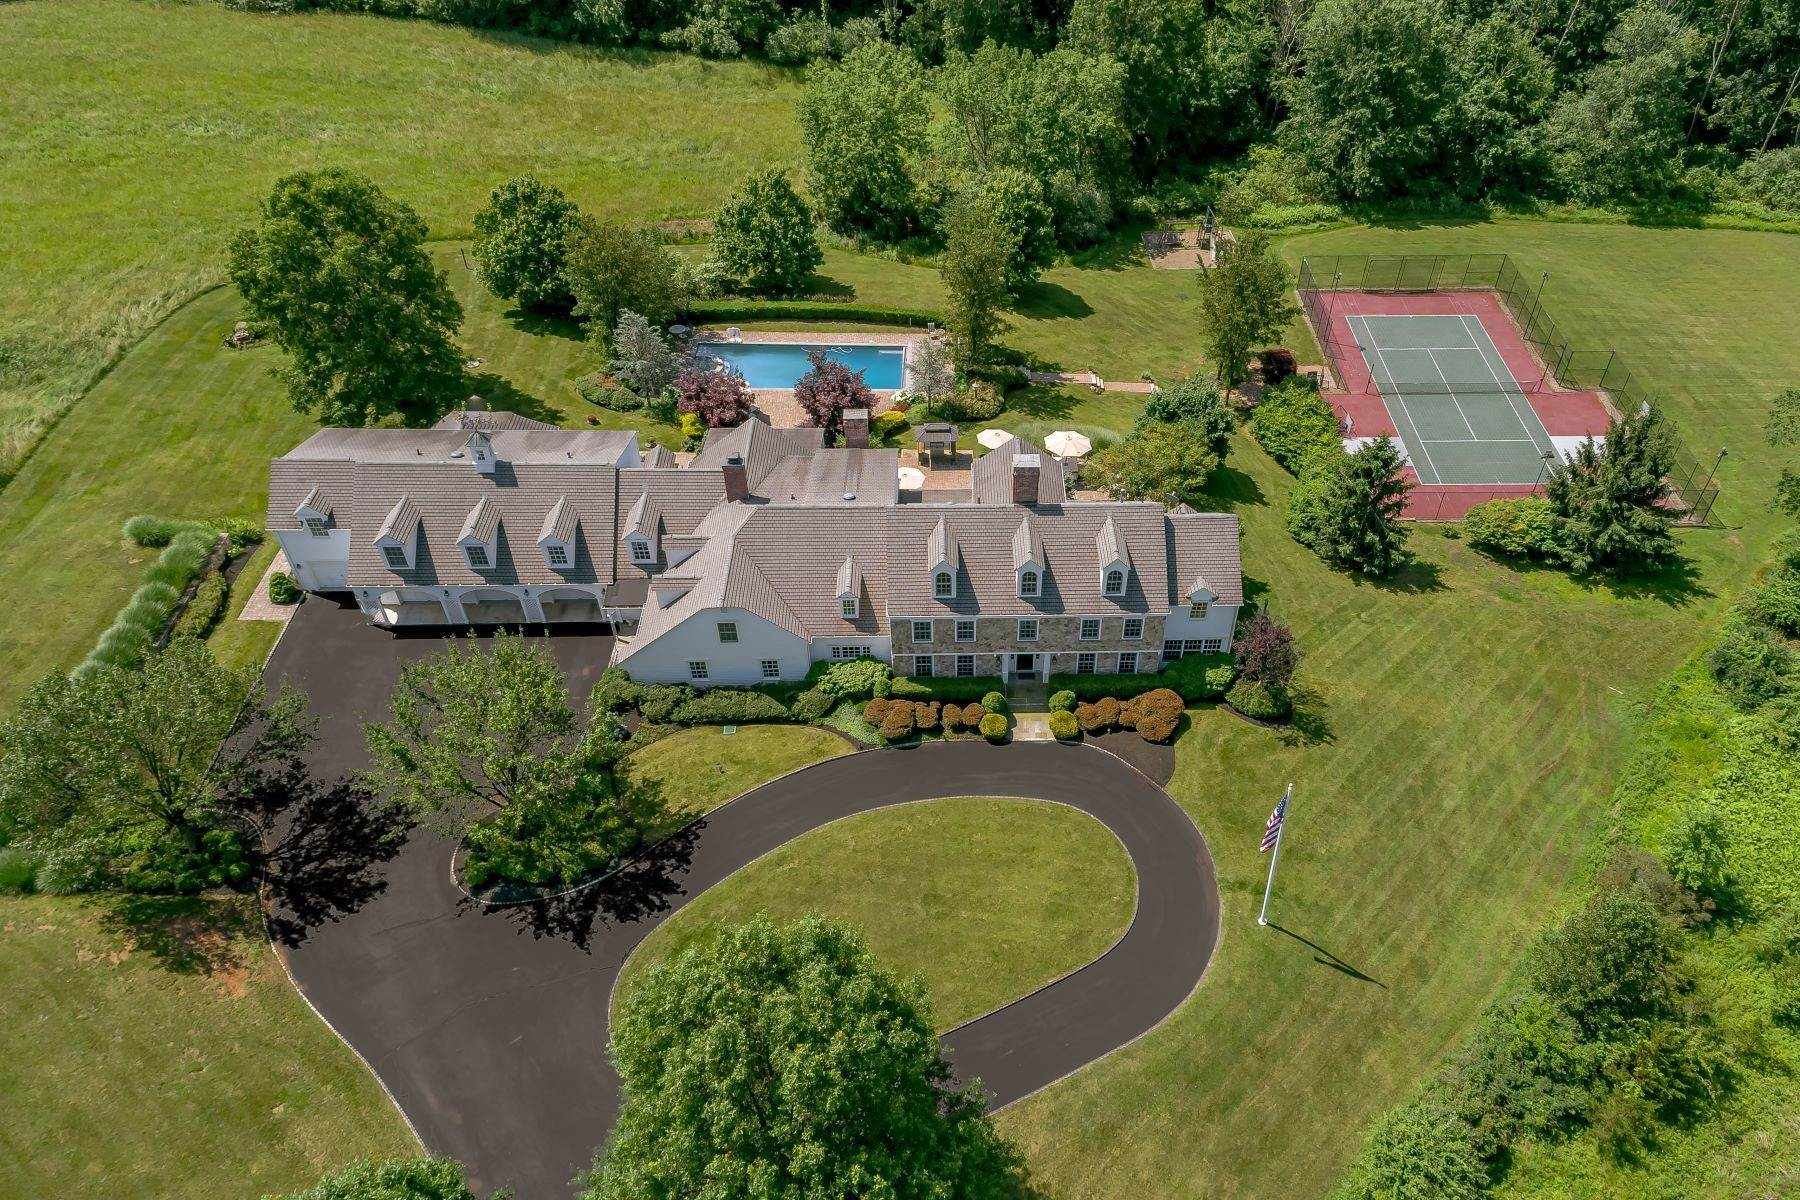 Single Family Homes for Sale at 'Oakland Farm' 520 Pottersville Road, Bedminster, New Jersey 07921 United States